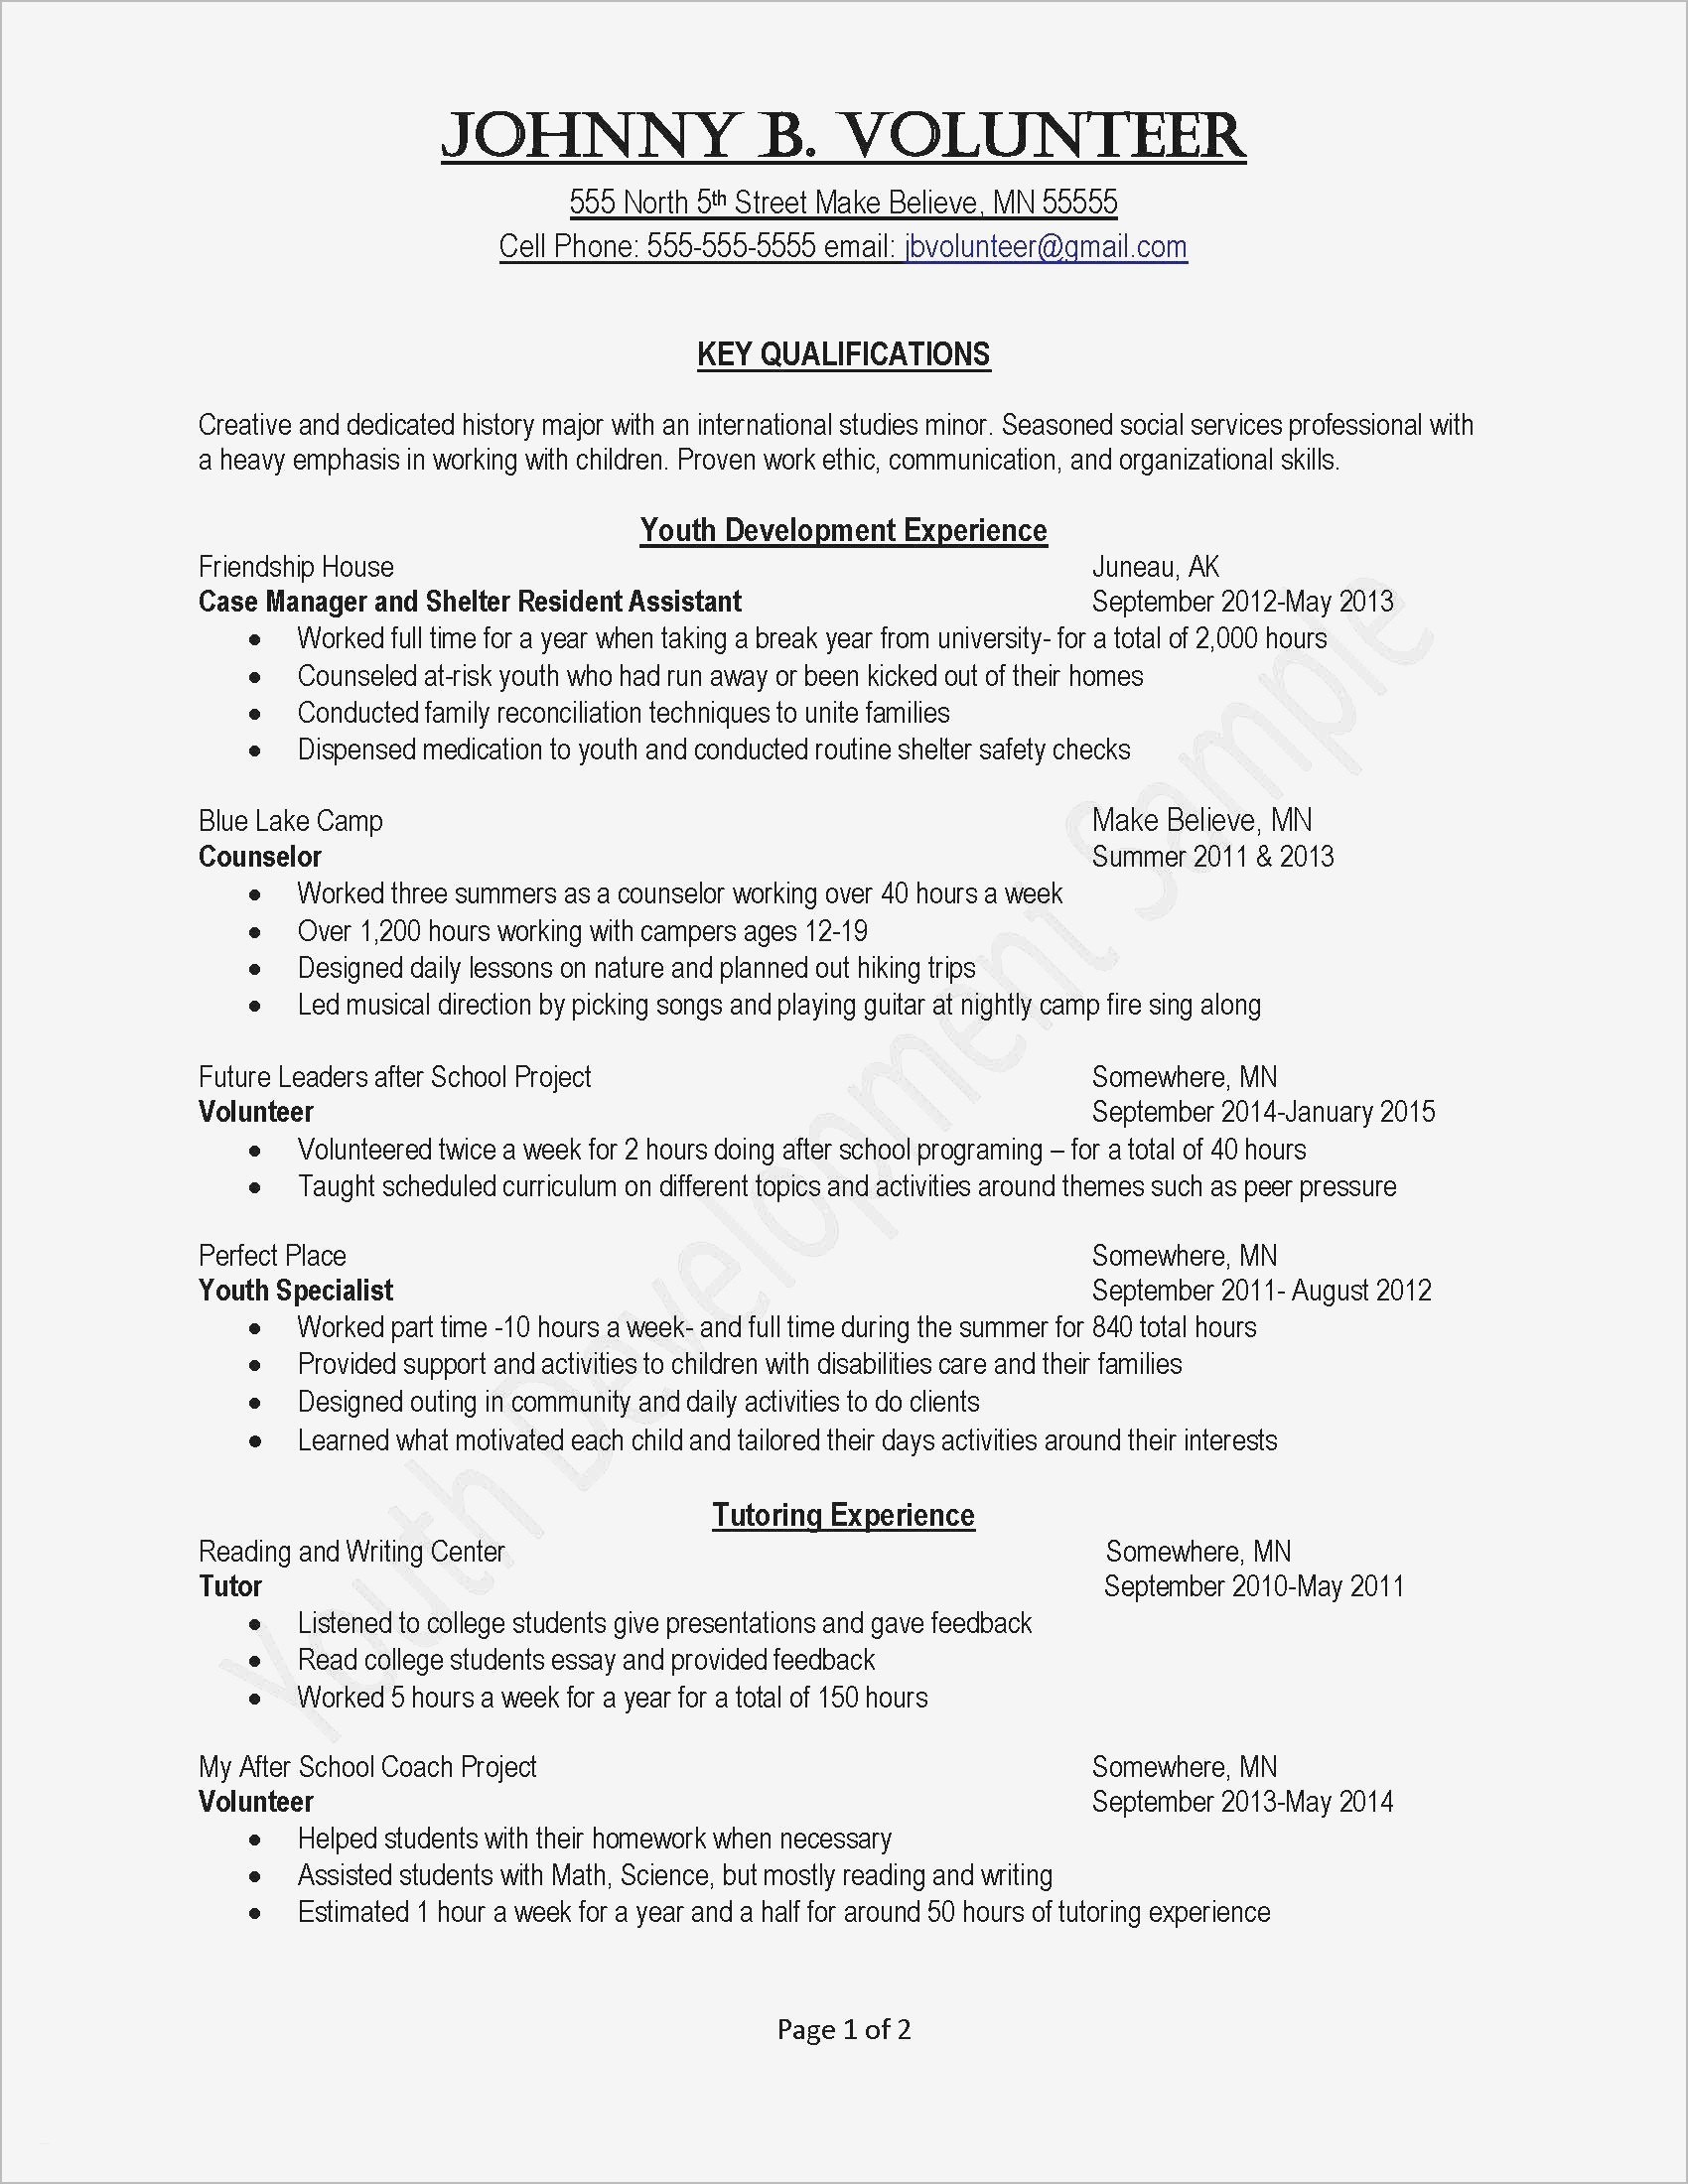 Medical Technologist Resume Template - Medical Technologist Resume Unique Beautiful Professional Resume